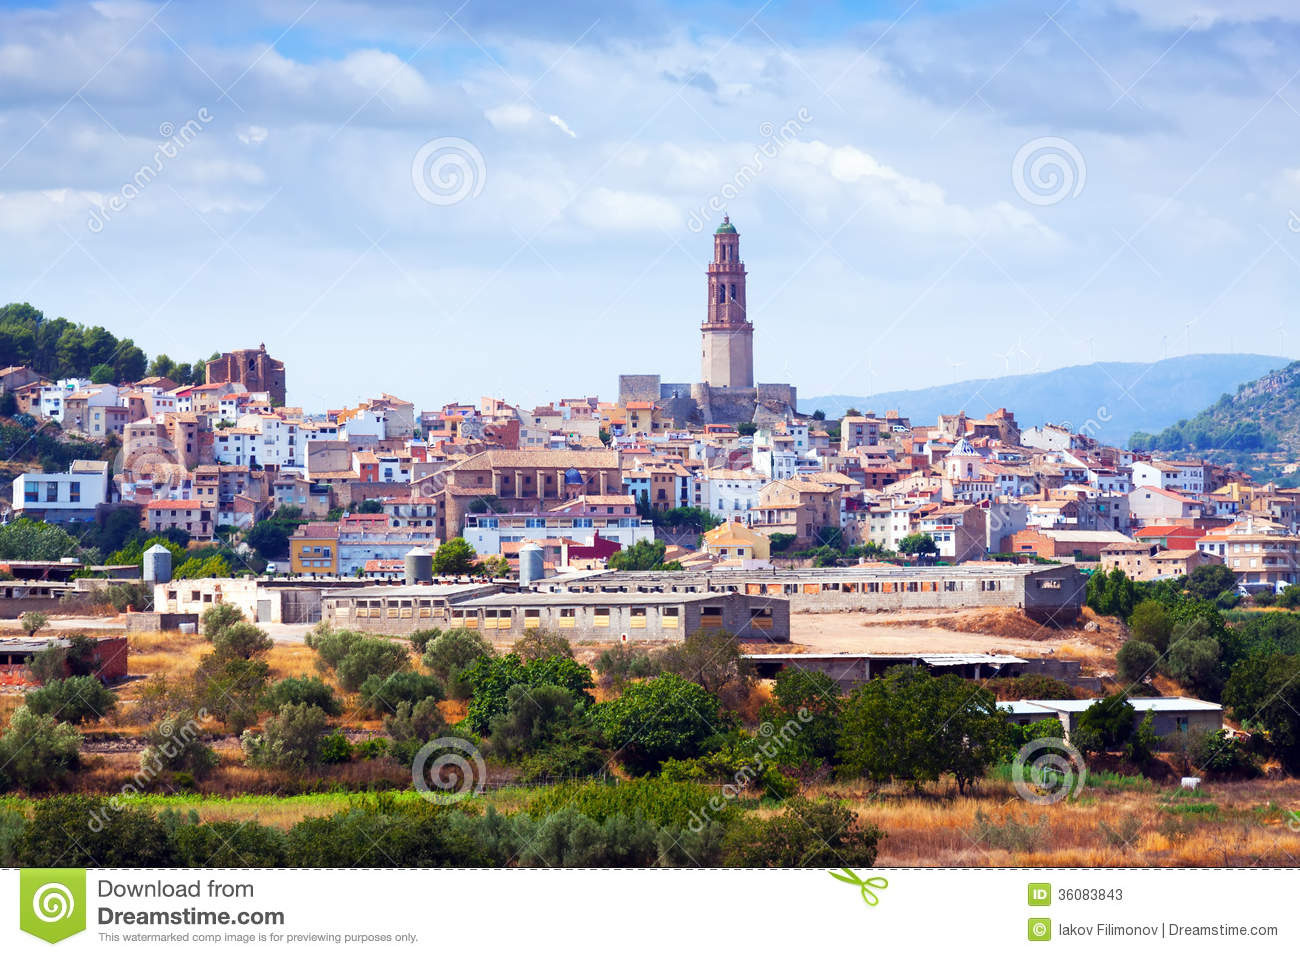 Game of Thrones' Boosts Tourism in Tiny Spanish Town | Travel   ...